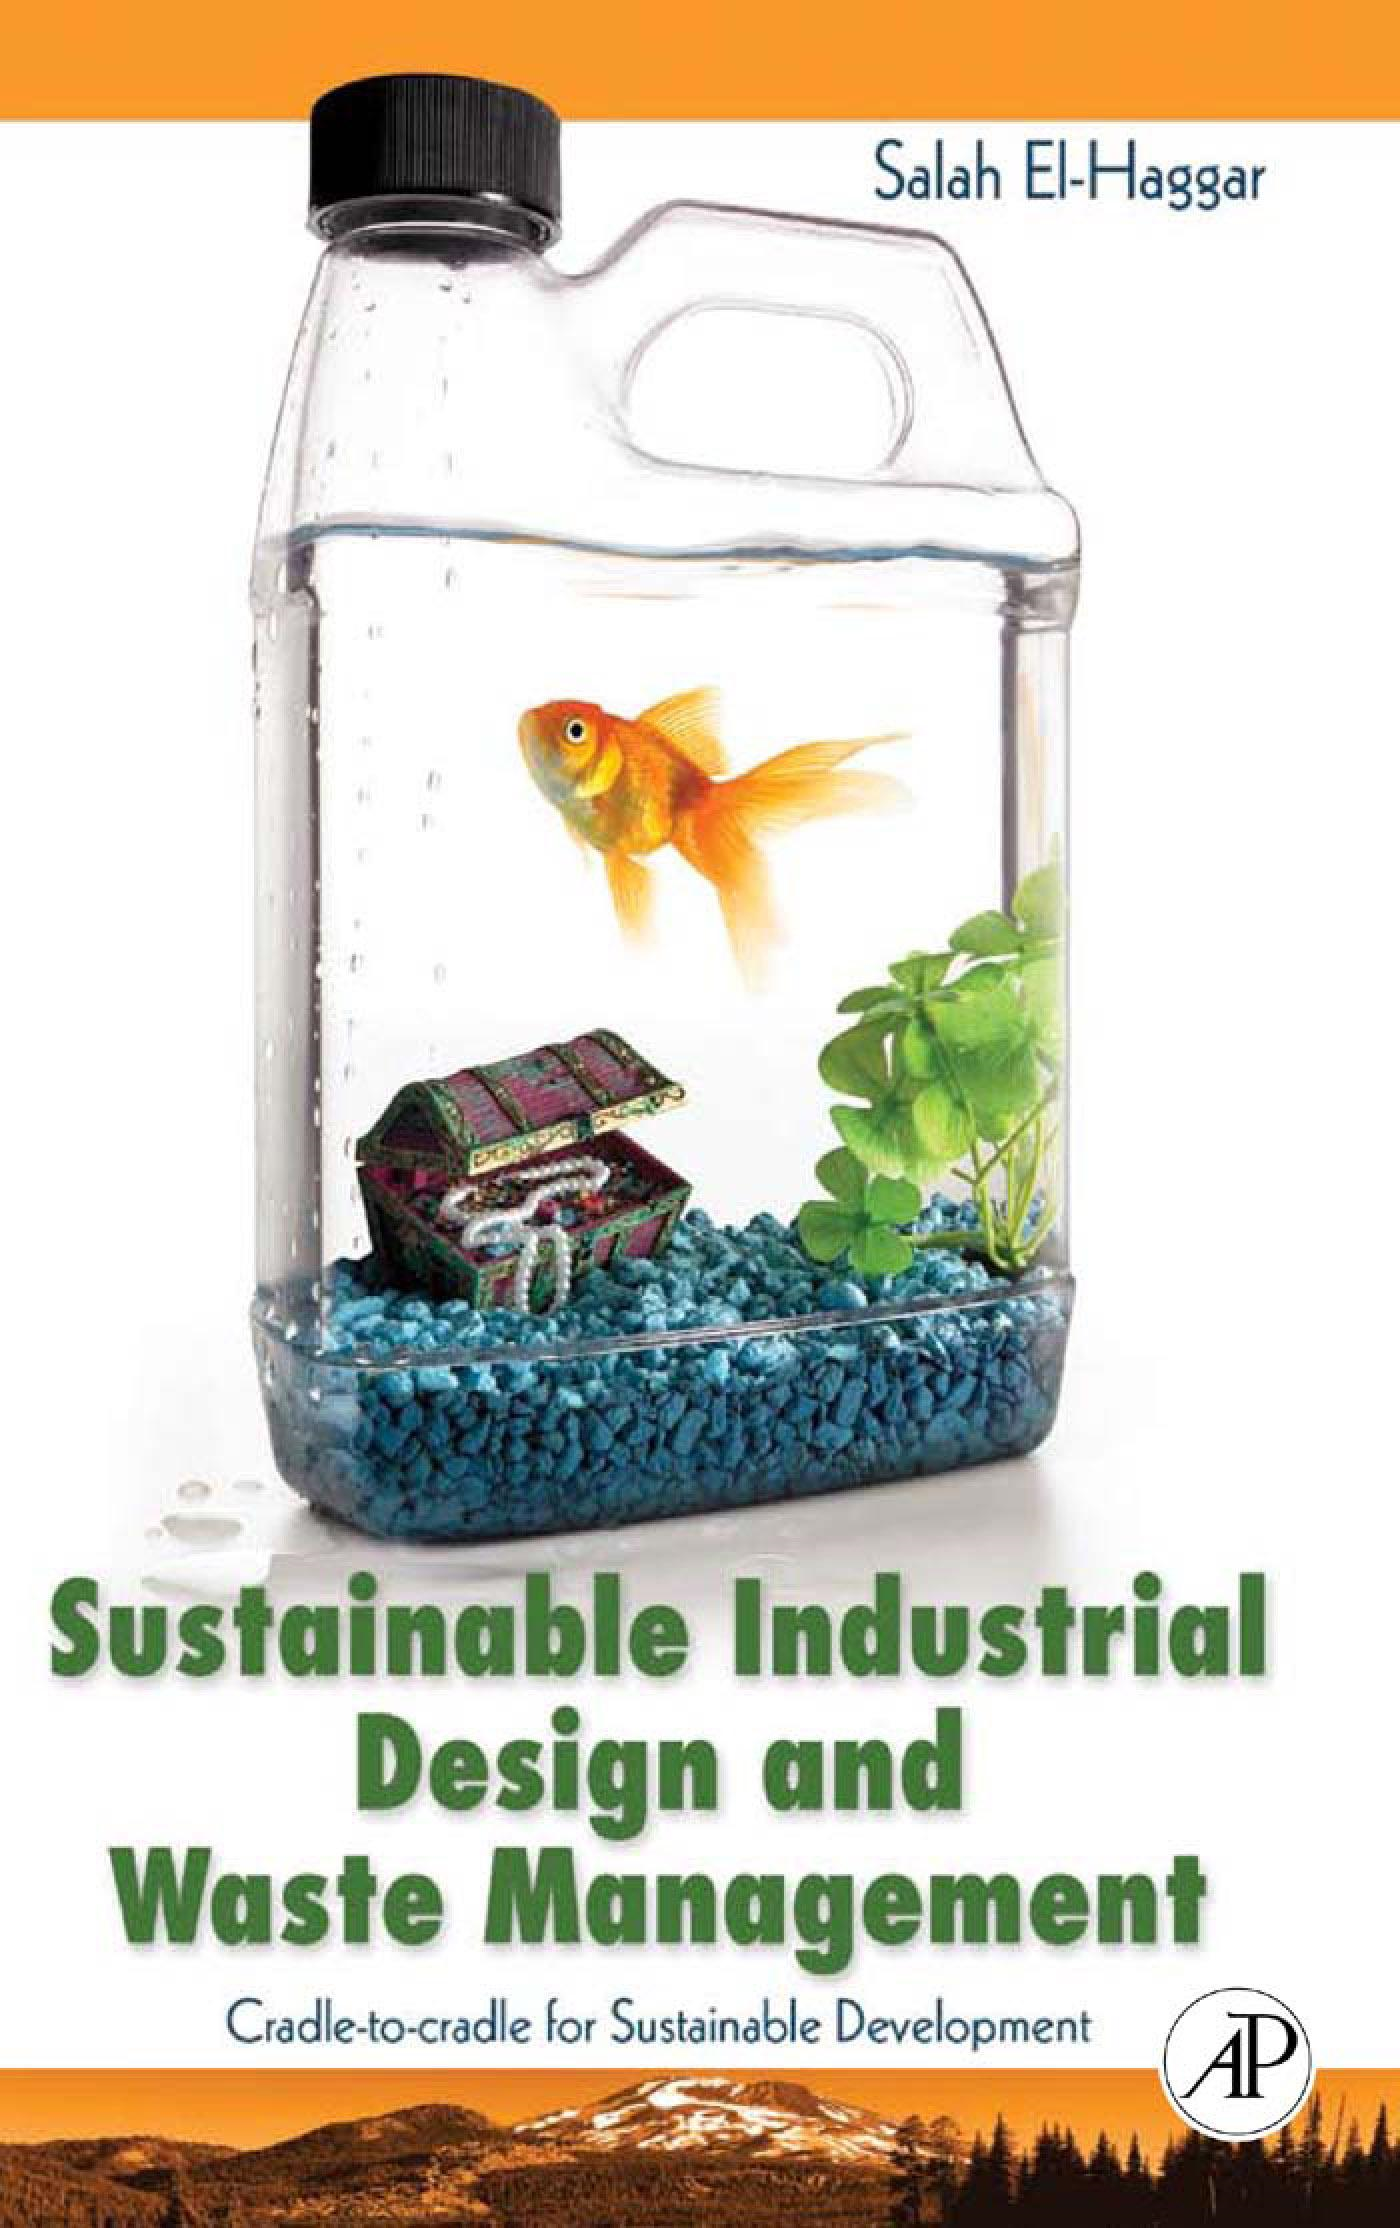 Sustainable Industrial Design and Waste Management: Cradle-to-Cradle for Sustainable Development By: El Haggar, Salah